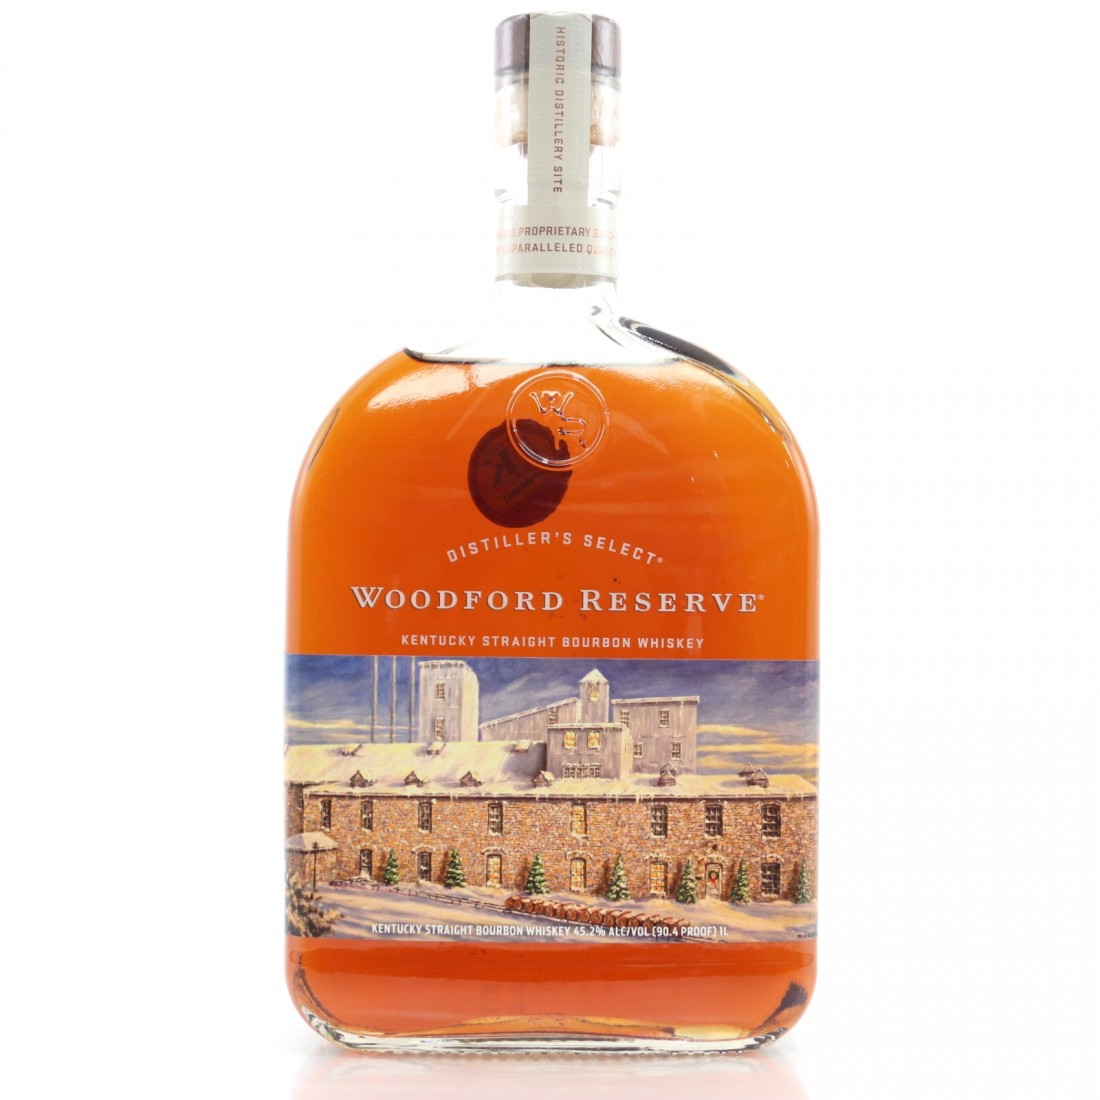 Woodford Reserve Distiller's Select 1 Litre / Historic Distillery Label